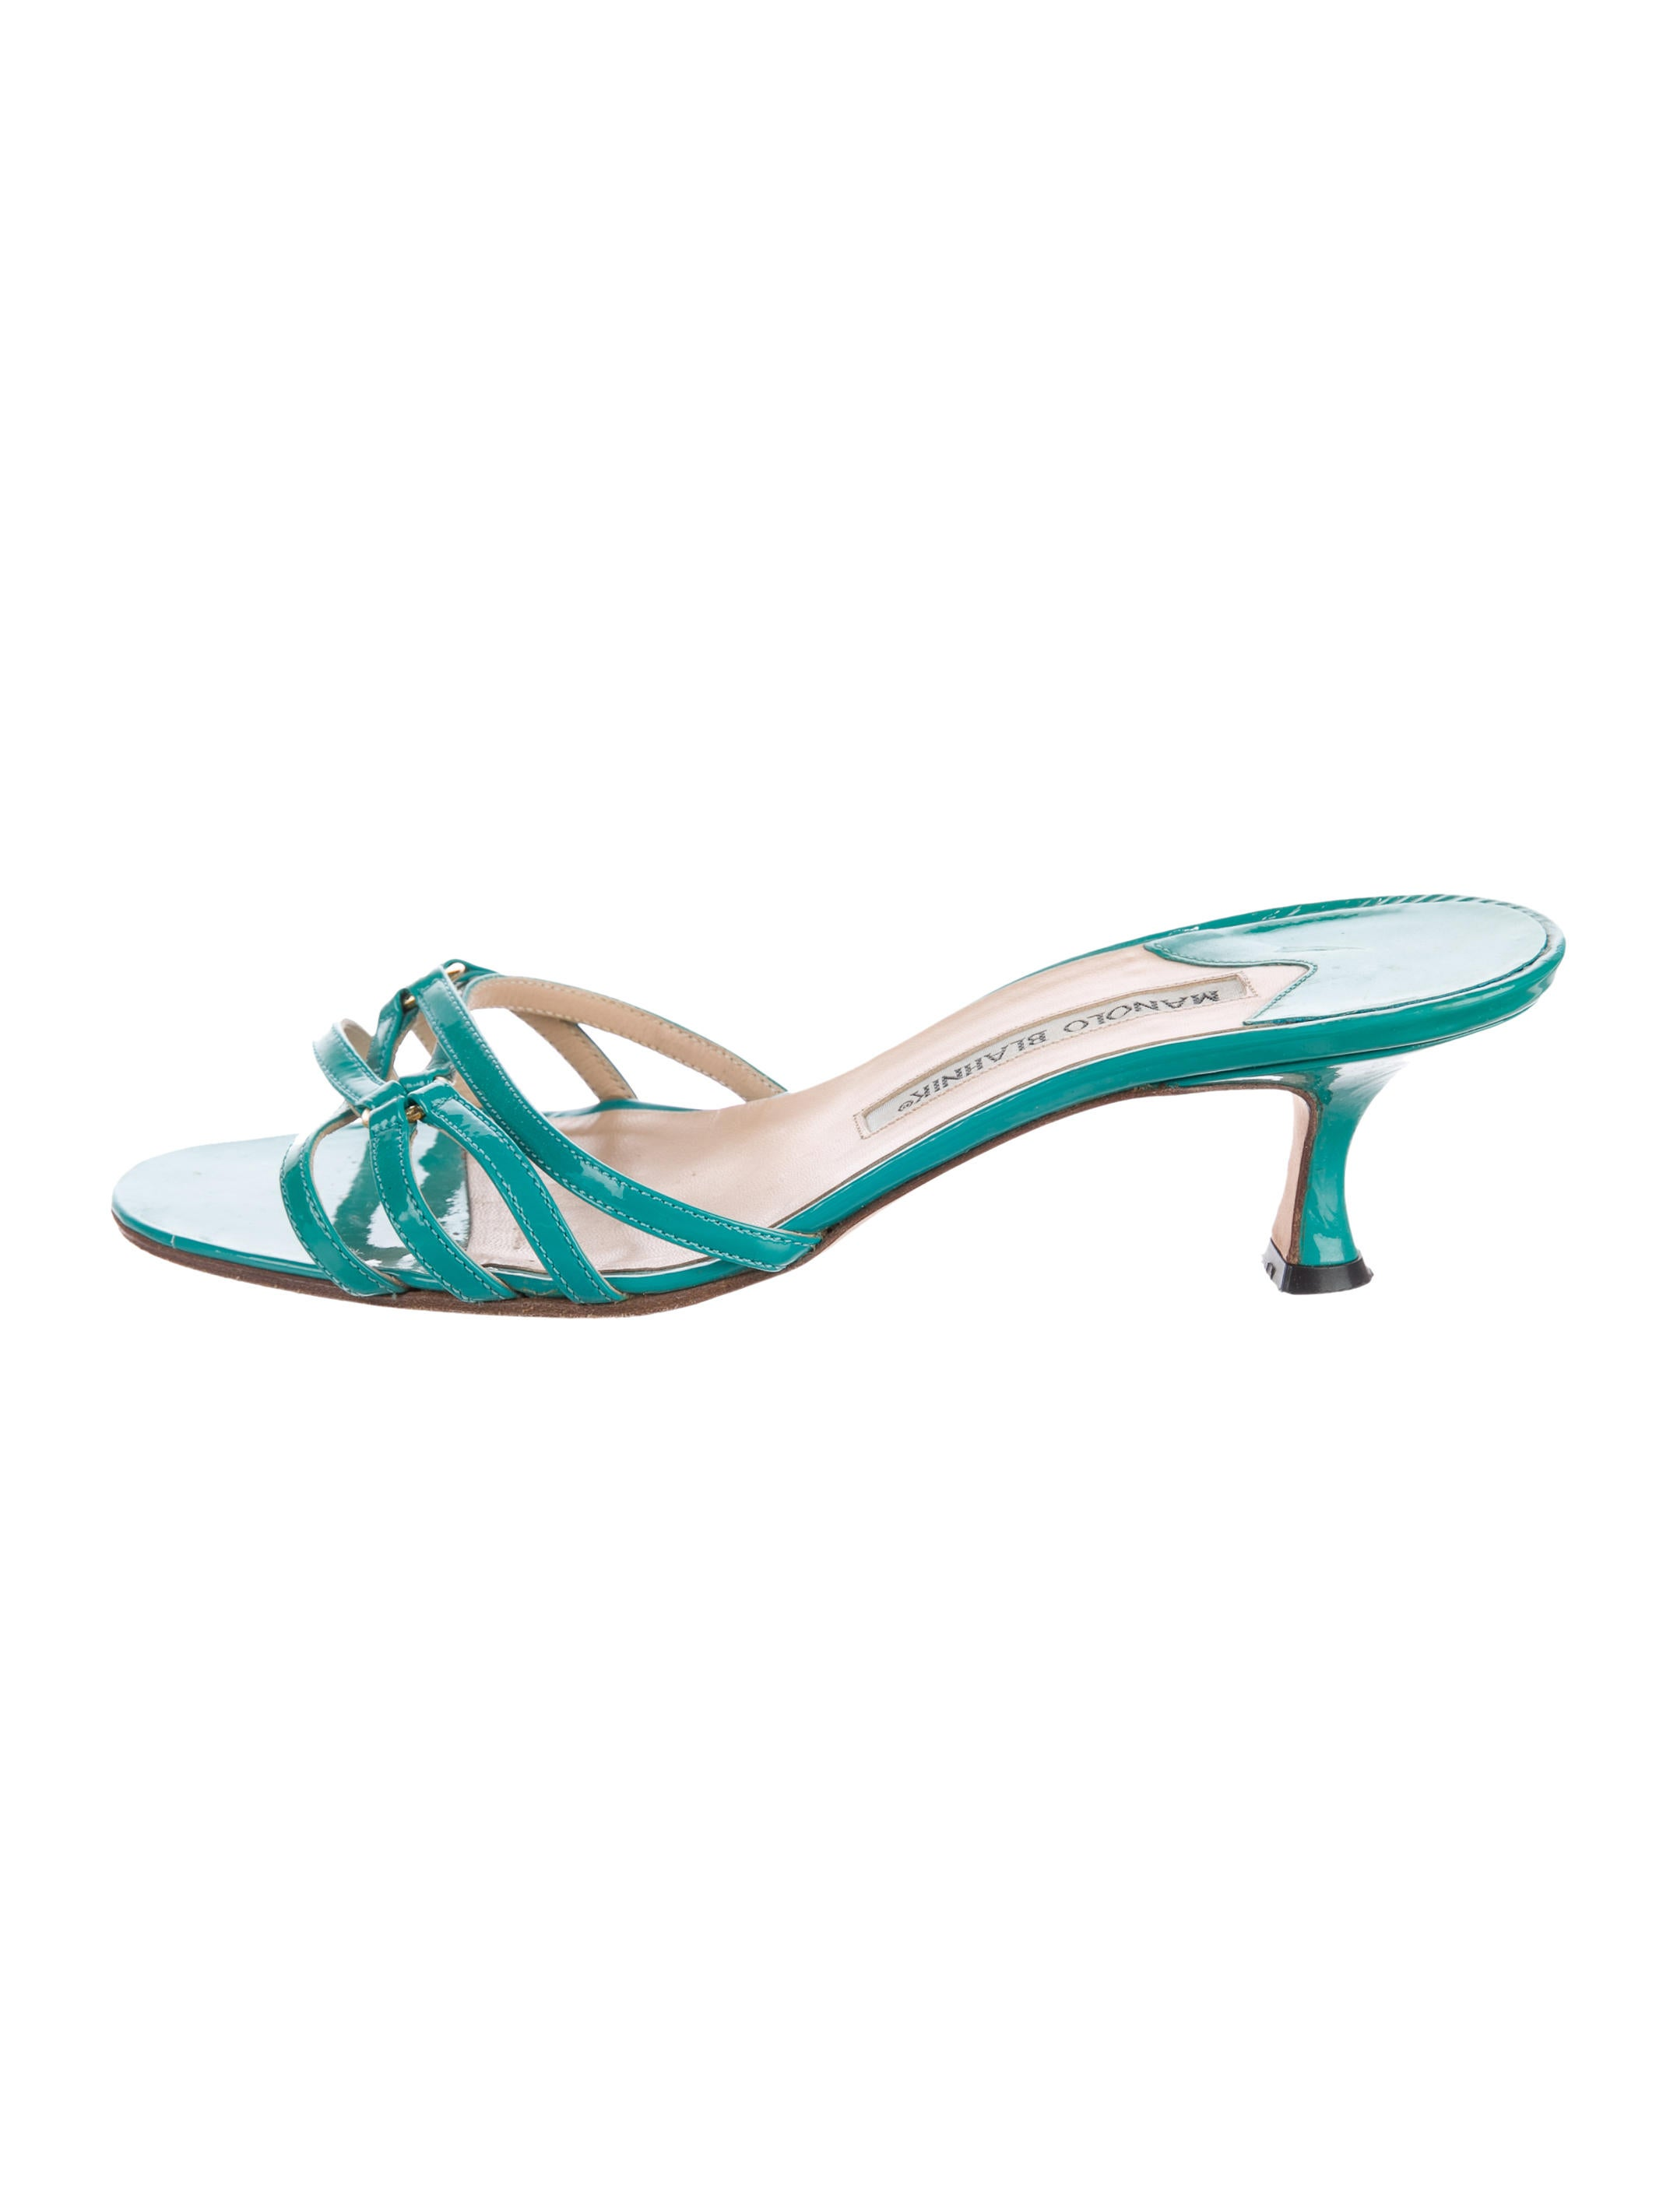 low price fee shipping official site cheap online Manolo Blahnik Annamu Patent Leather Slide Sandals for nice online extremely cheap price A3RDfA3v